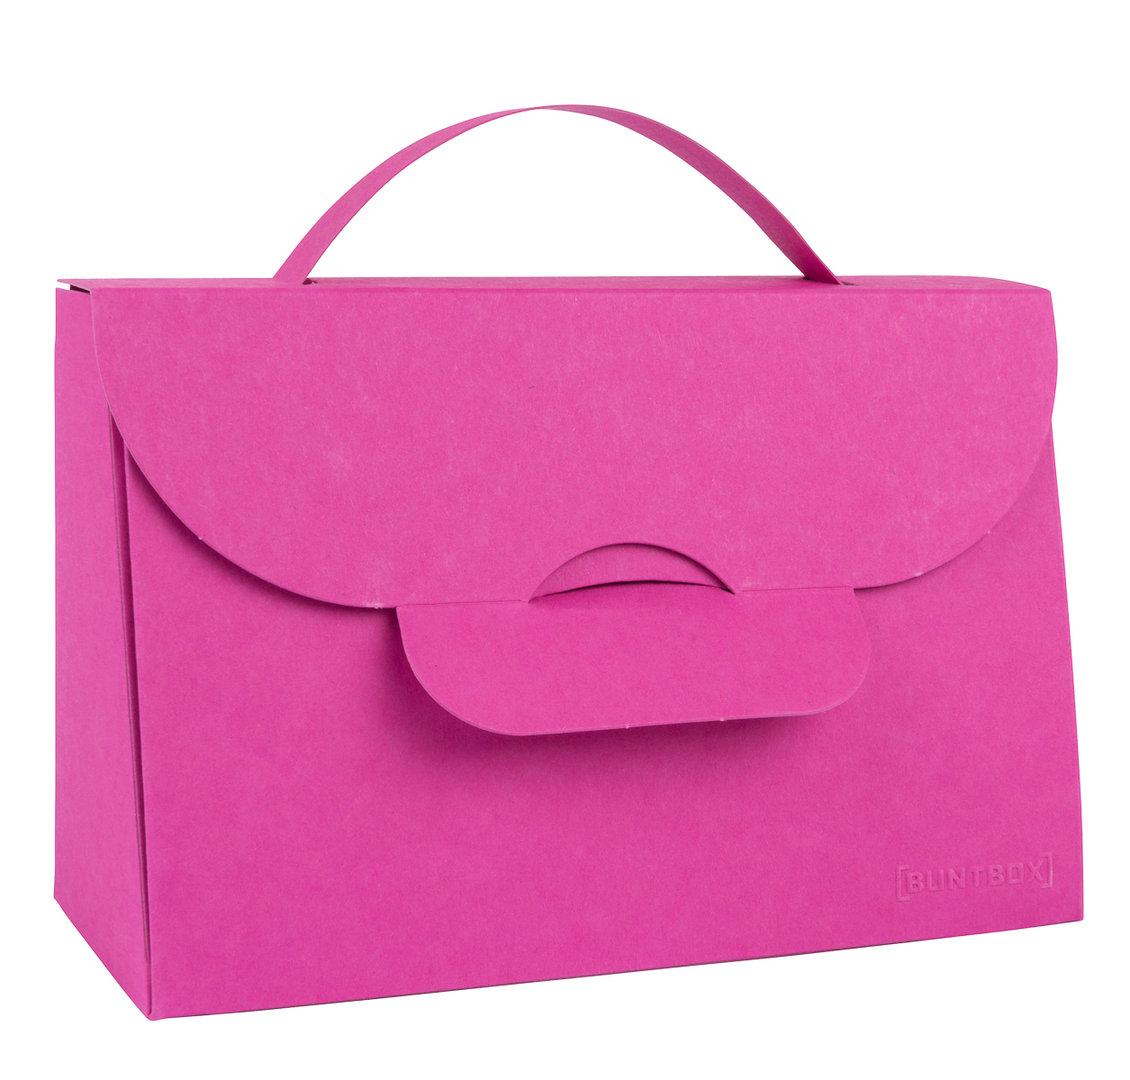 BUNTBOX Handbag M - Magenta